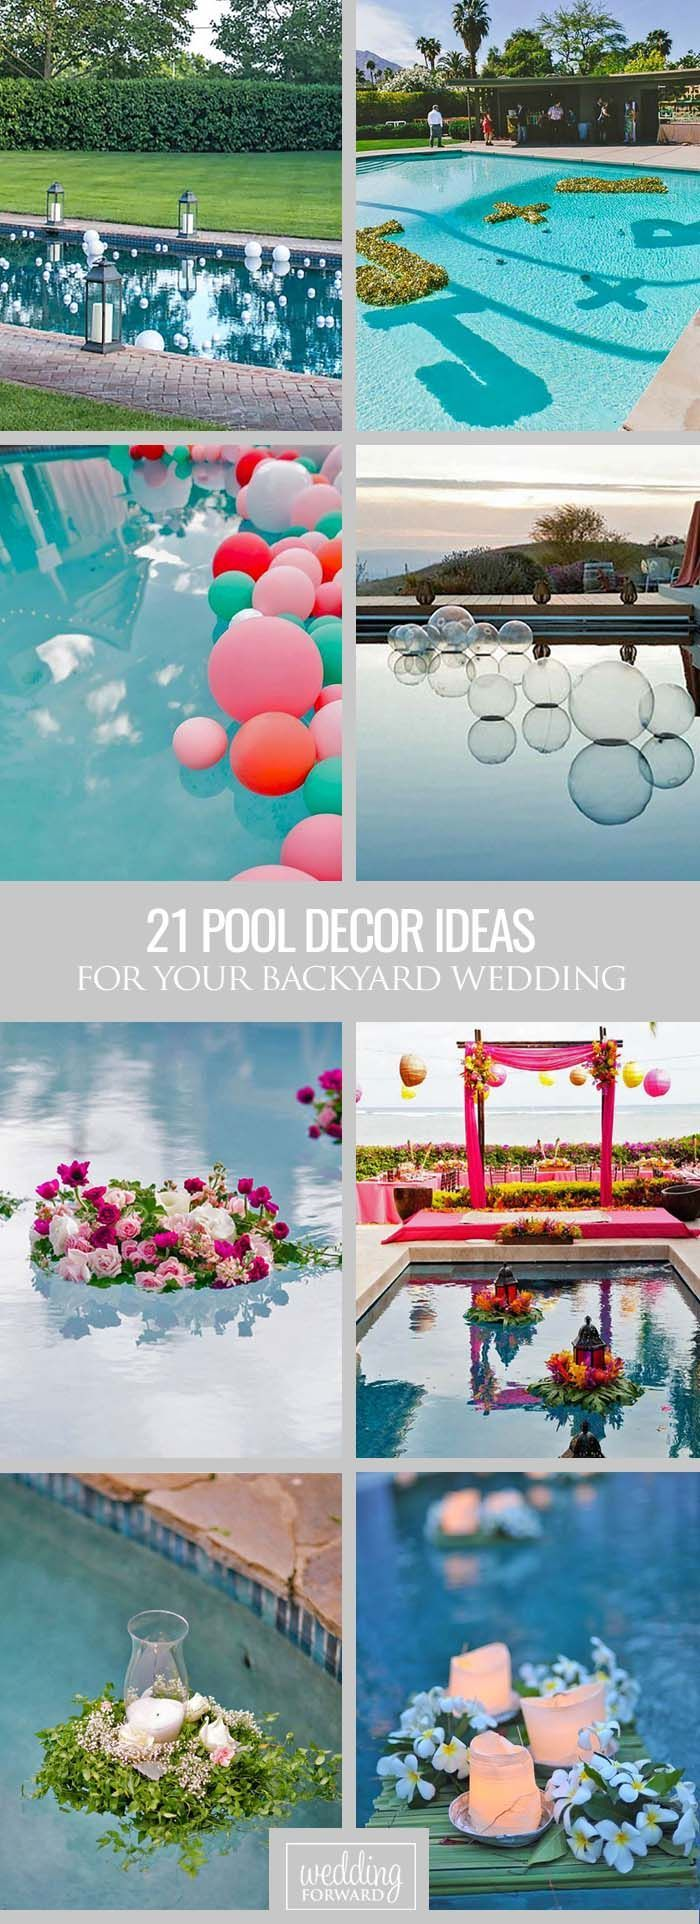 Hotel Pool Party Ideas roomawesome hotel party rooms room design ideas best and hotel party rooms design ideas 15 Pool Decor Ideas For Your Backyard Wedding